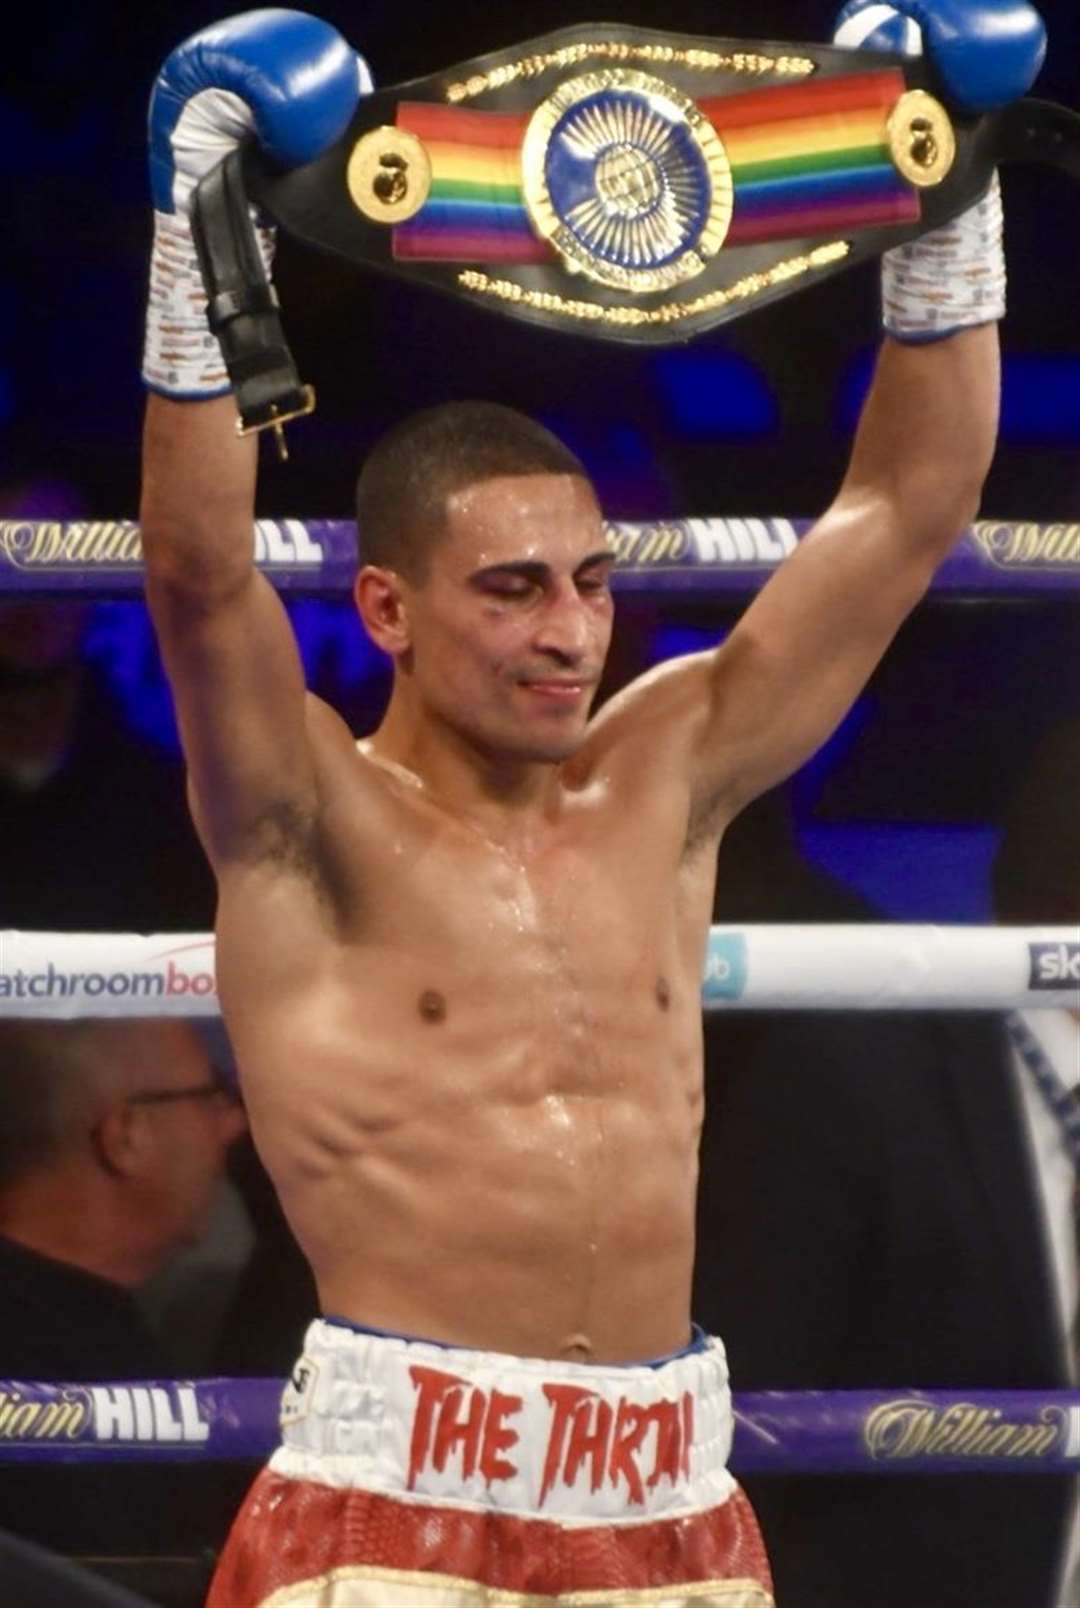 Jordan Gill raises the Commomwealth belt above his head (5053048)